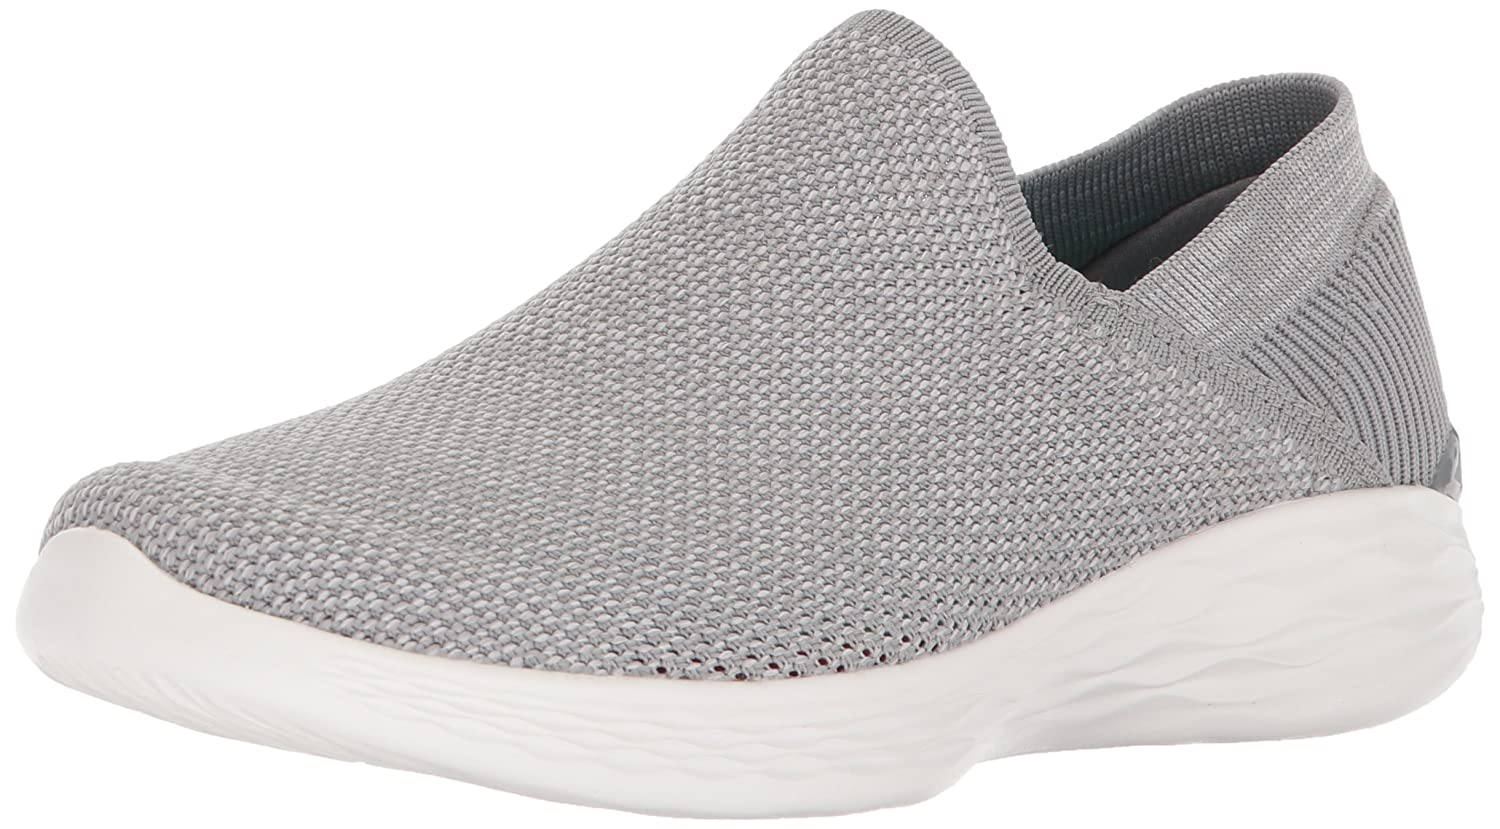 Skechers You-Rise, Baskets Enfiler Femme You-Rise, Baskets Gry Enfiler Grey 36bf322 - latesttechnology.space